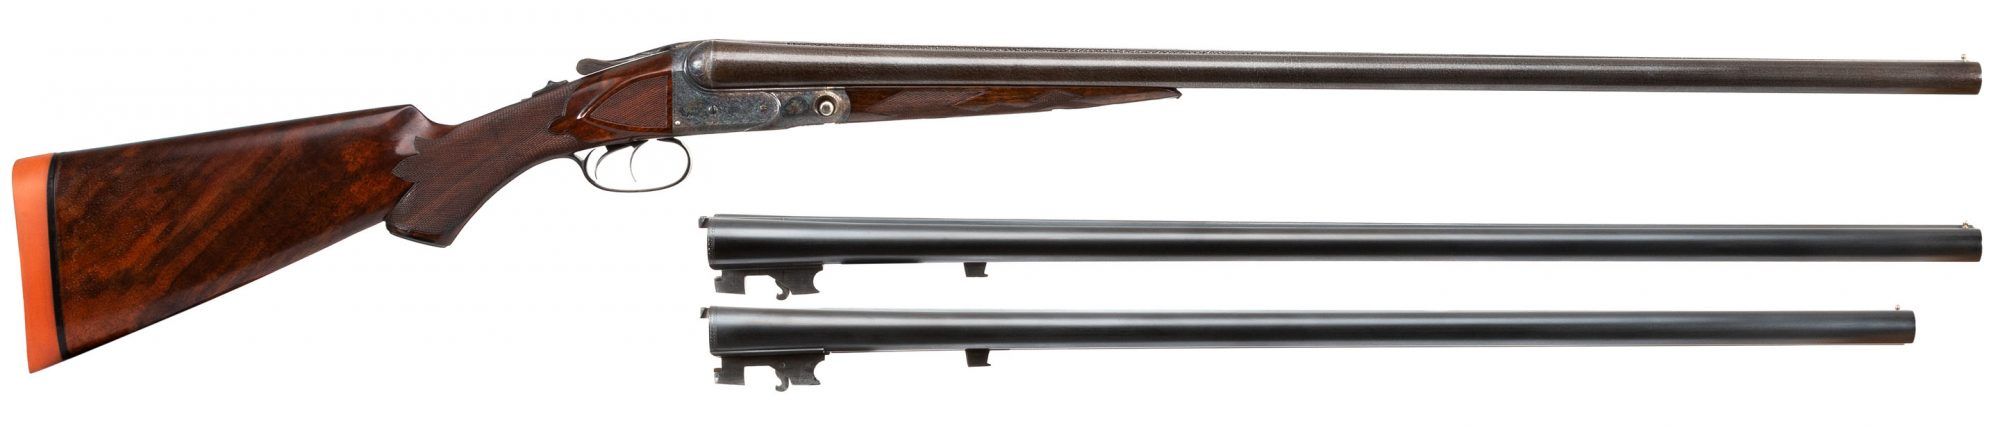 Photo of antique shotgun, Parker A Grade from 1892, color case hardening by Turnbull Restoration